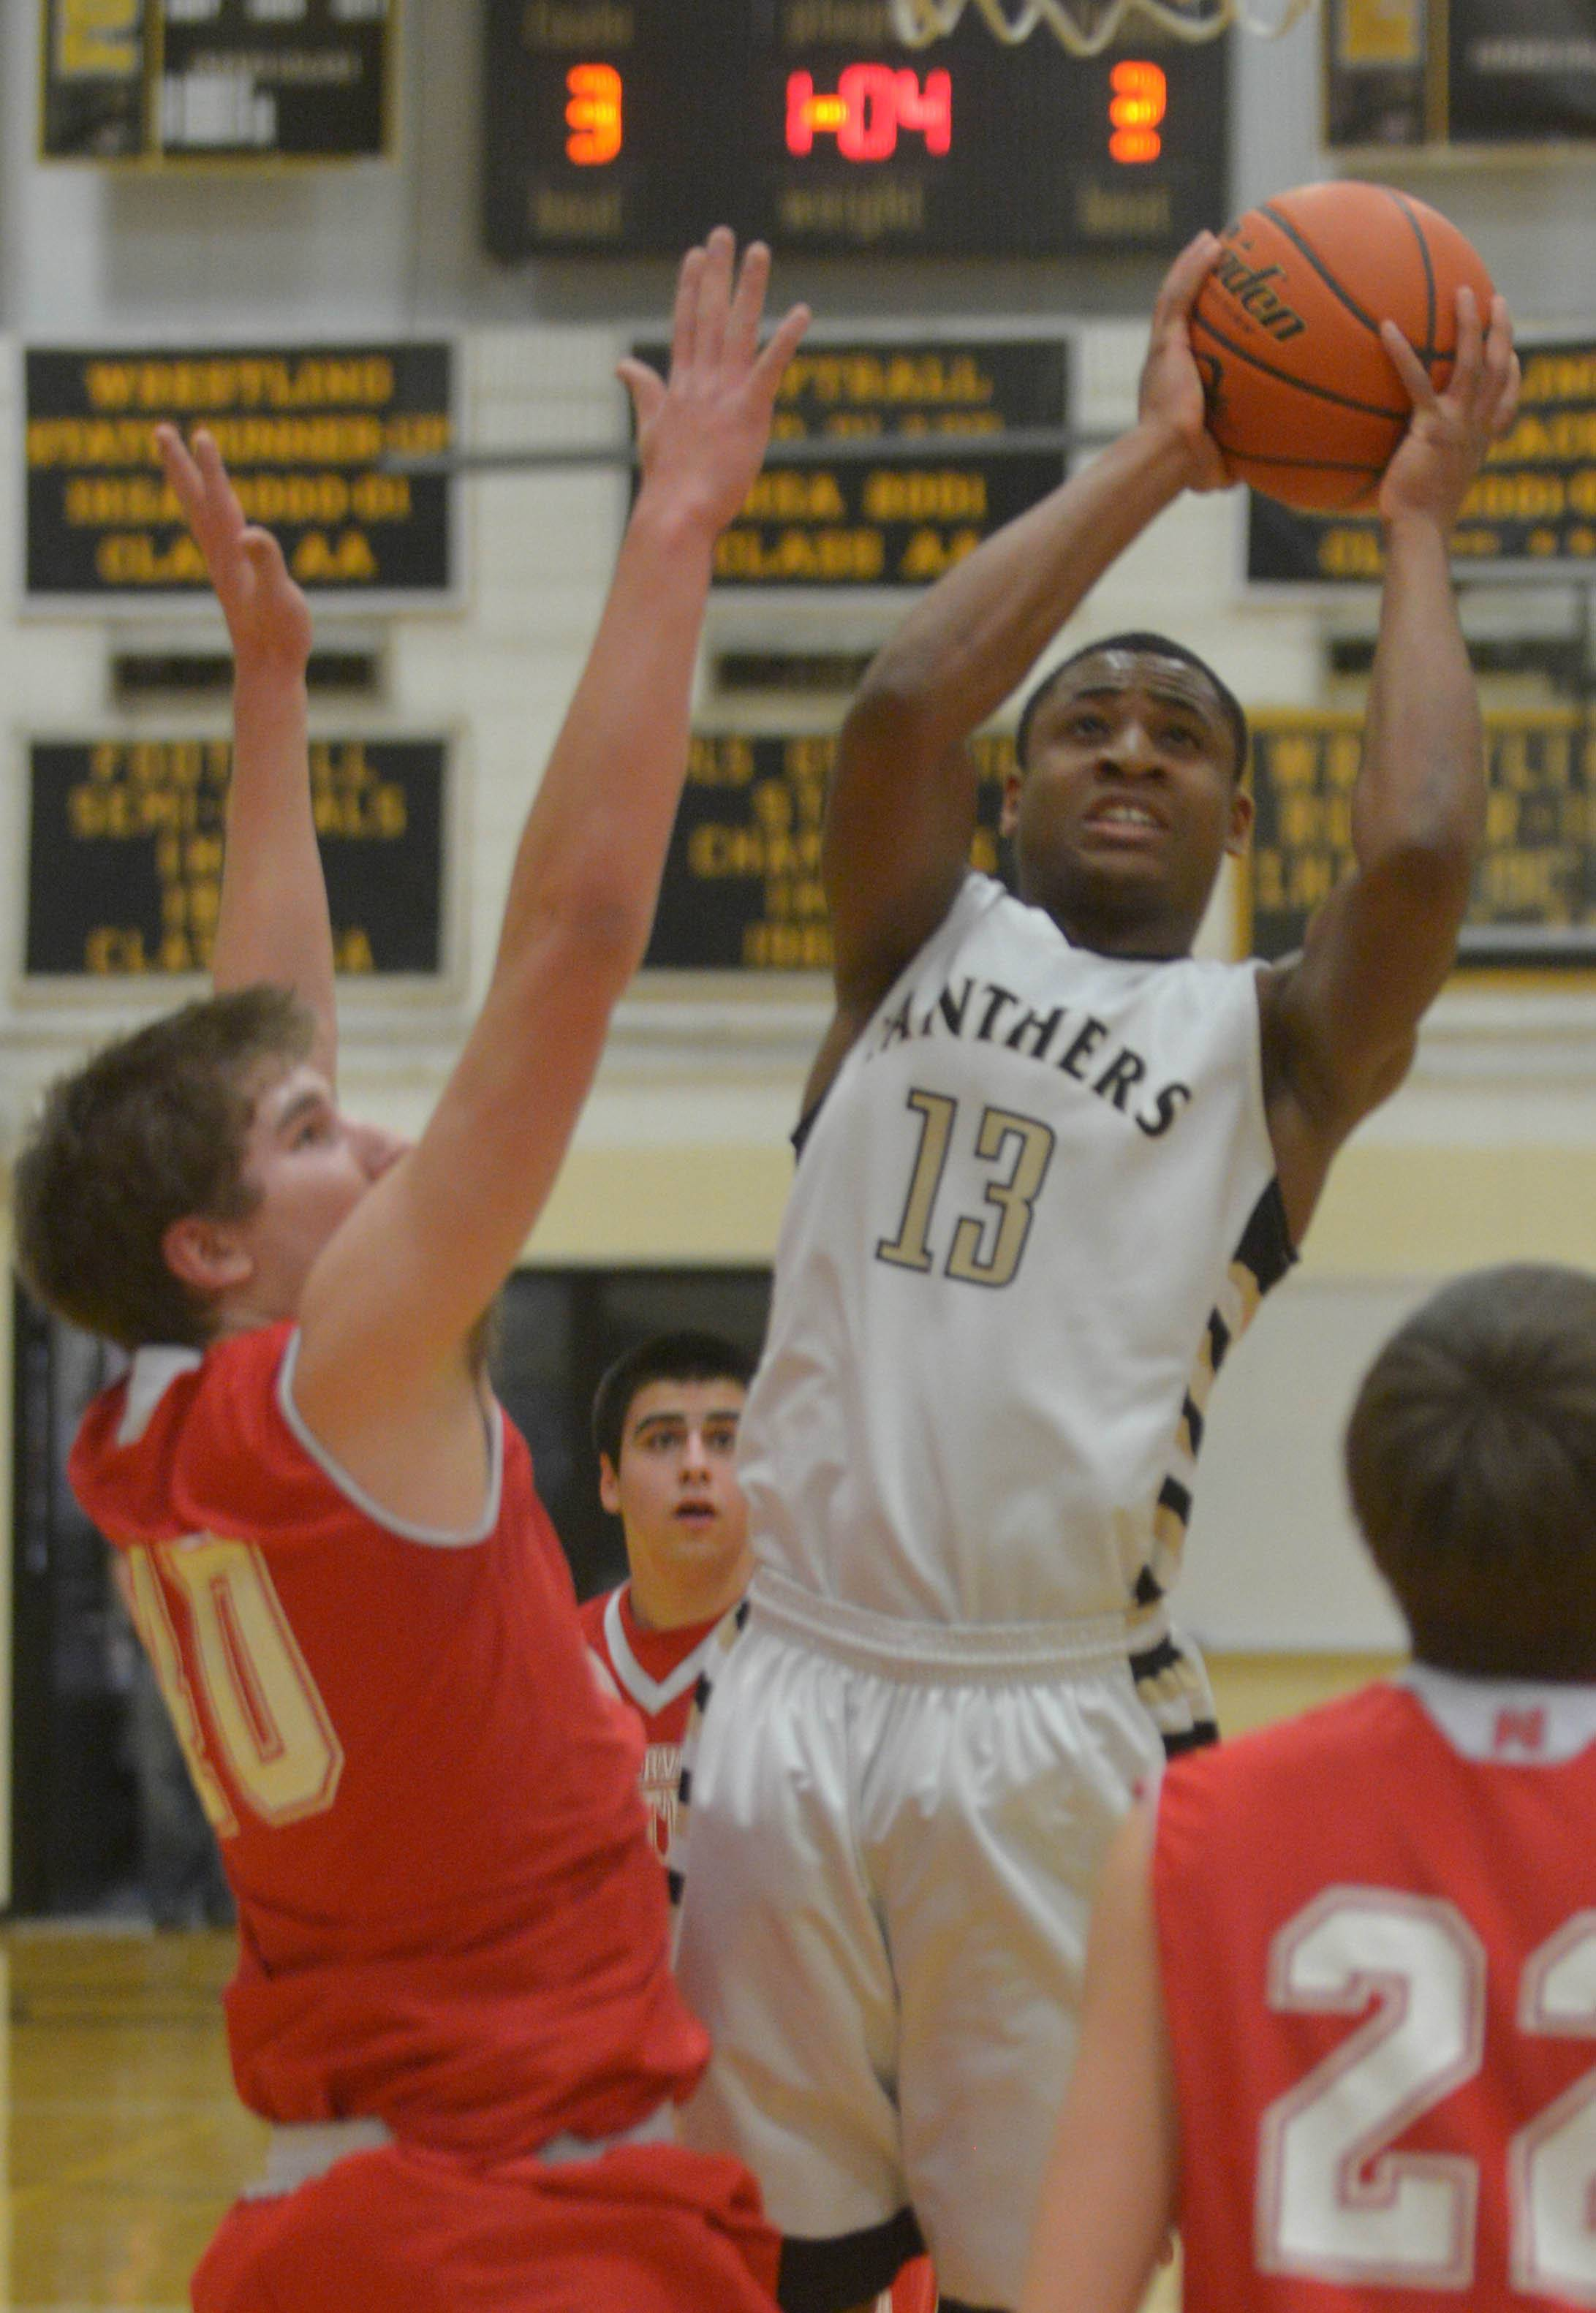 Glenbard North edges closer to DVC title